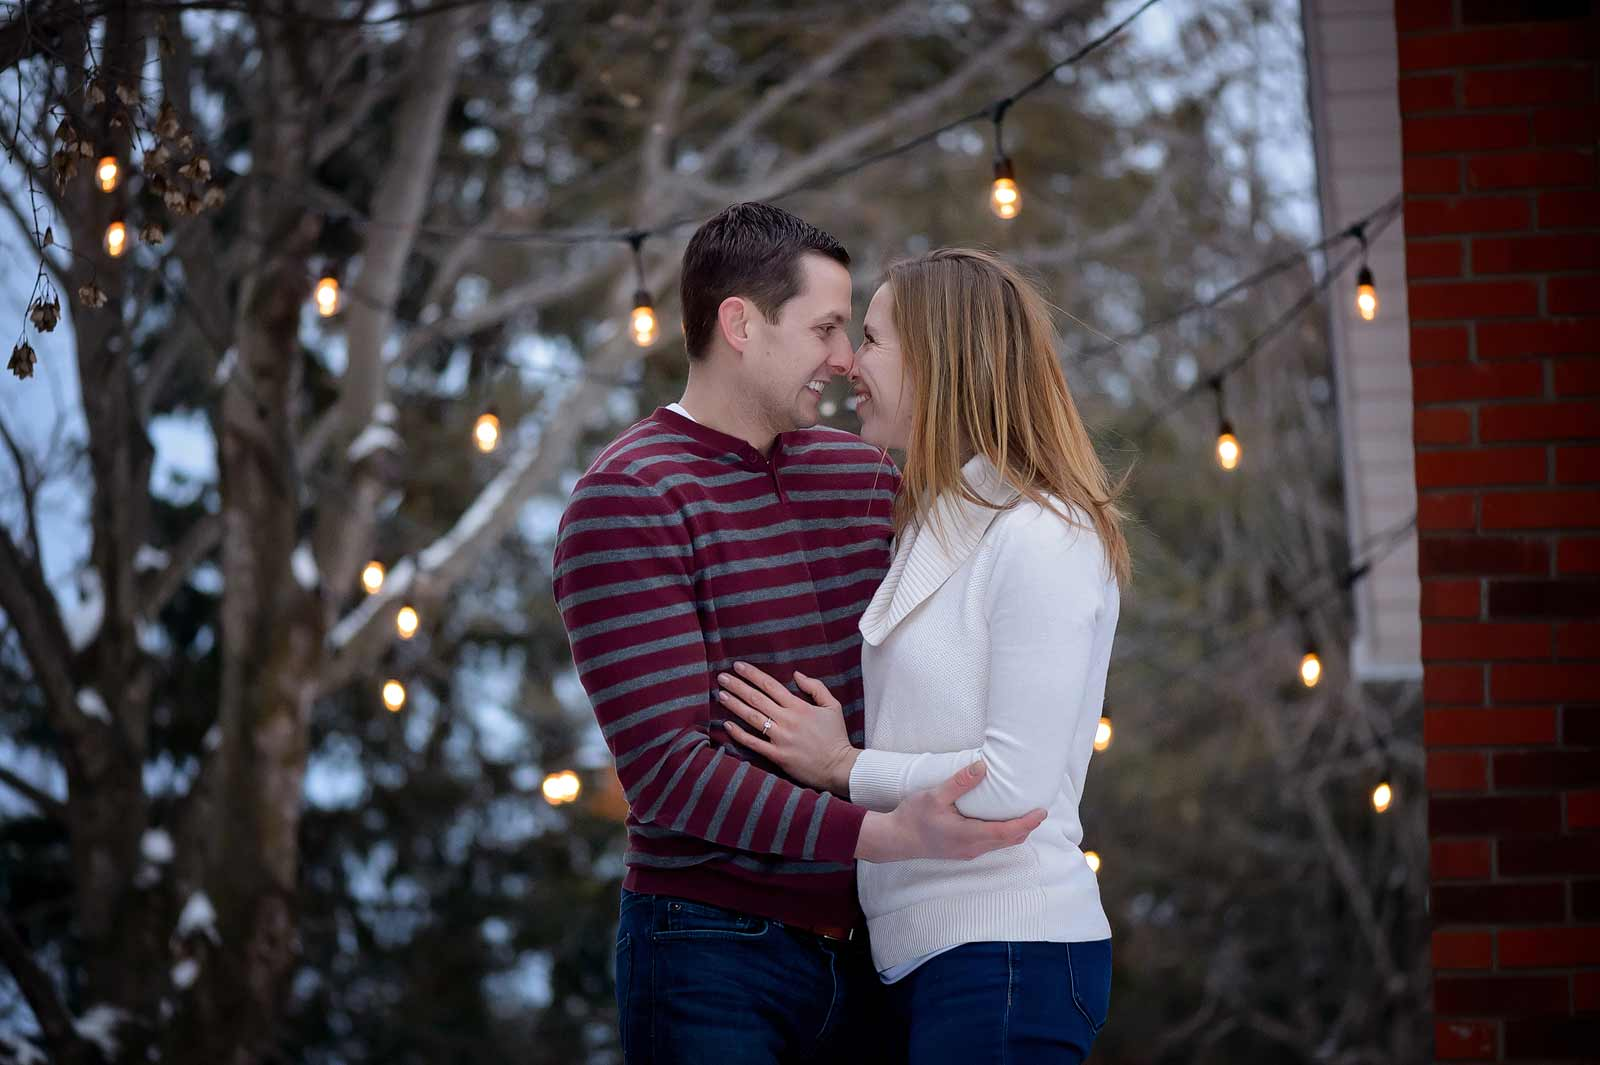 Bridget and Mike's winter engagement session in Manotick, Ottawa, Ontario, in the snow looking at each other with love in front of Edison lights